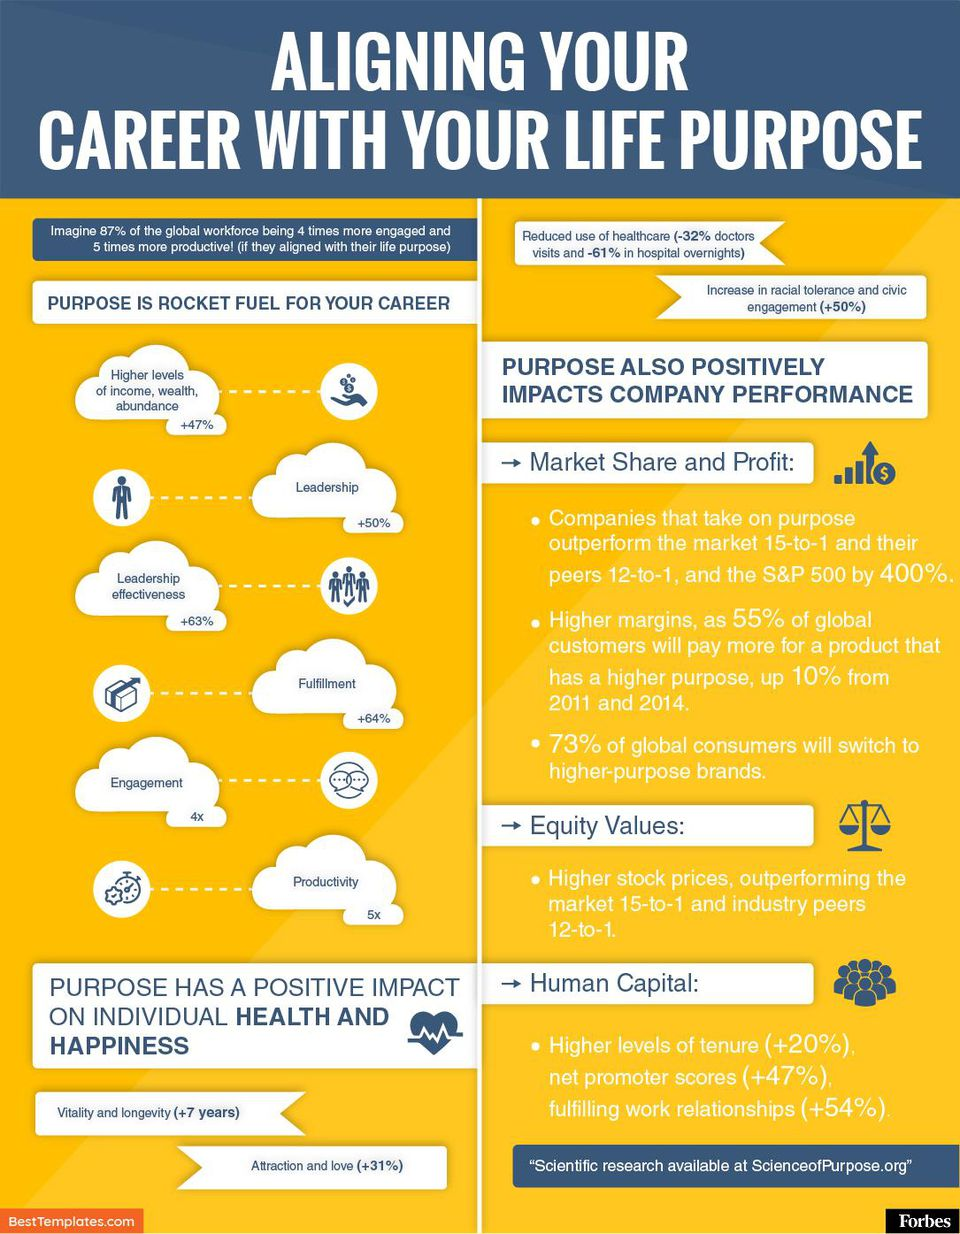 https---blogs-images.forbes.com-meimeifox-files-2018-03-Aligning-your-career-with-your-life-purpose-Infographic-2-01.jpg